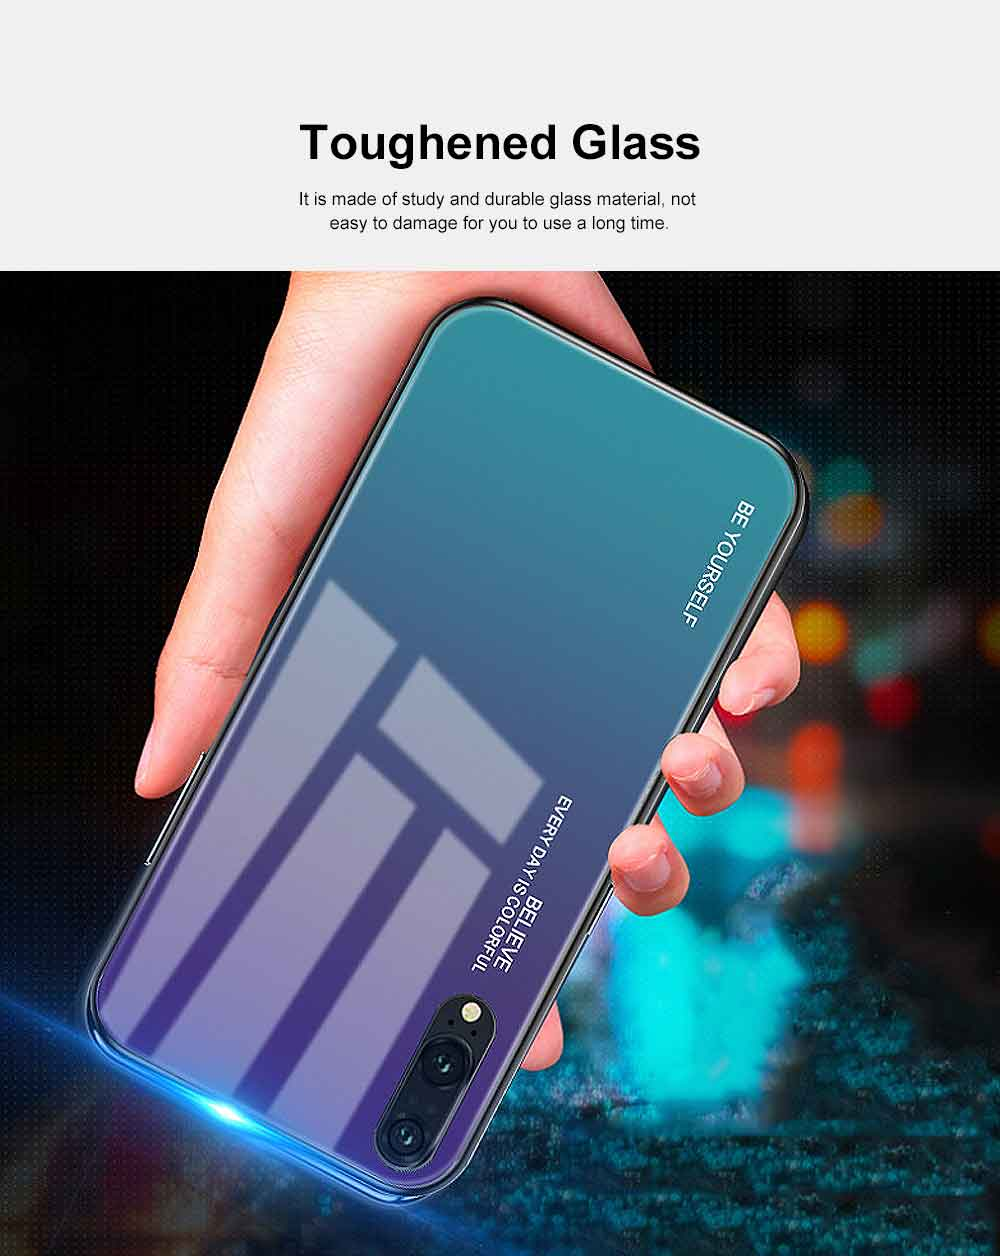 Gradient Phone Case for Huawei Nova 4, P20 Pro, P20 Lite, Explosion-proof and Scratch-resistant Case Cover with Toughened Glass and High-quality TPU 20